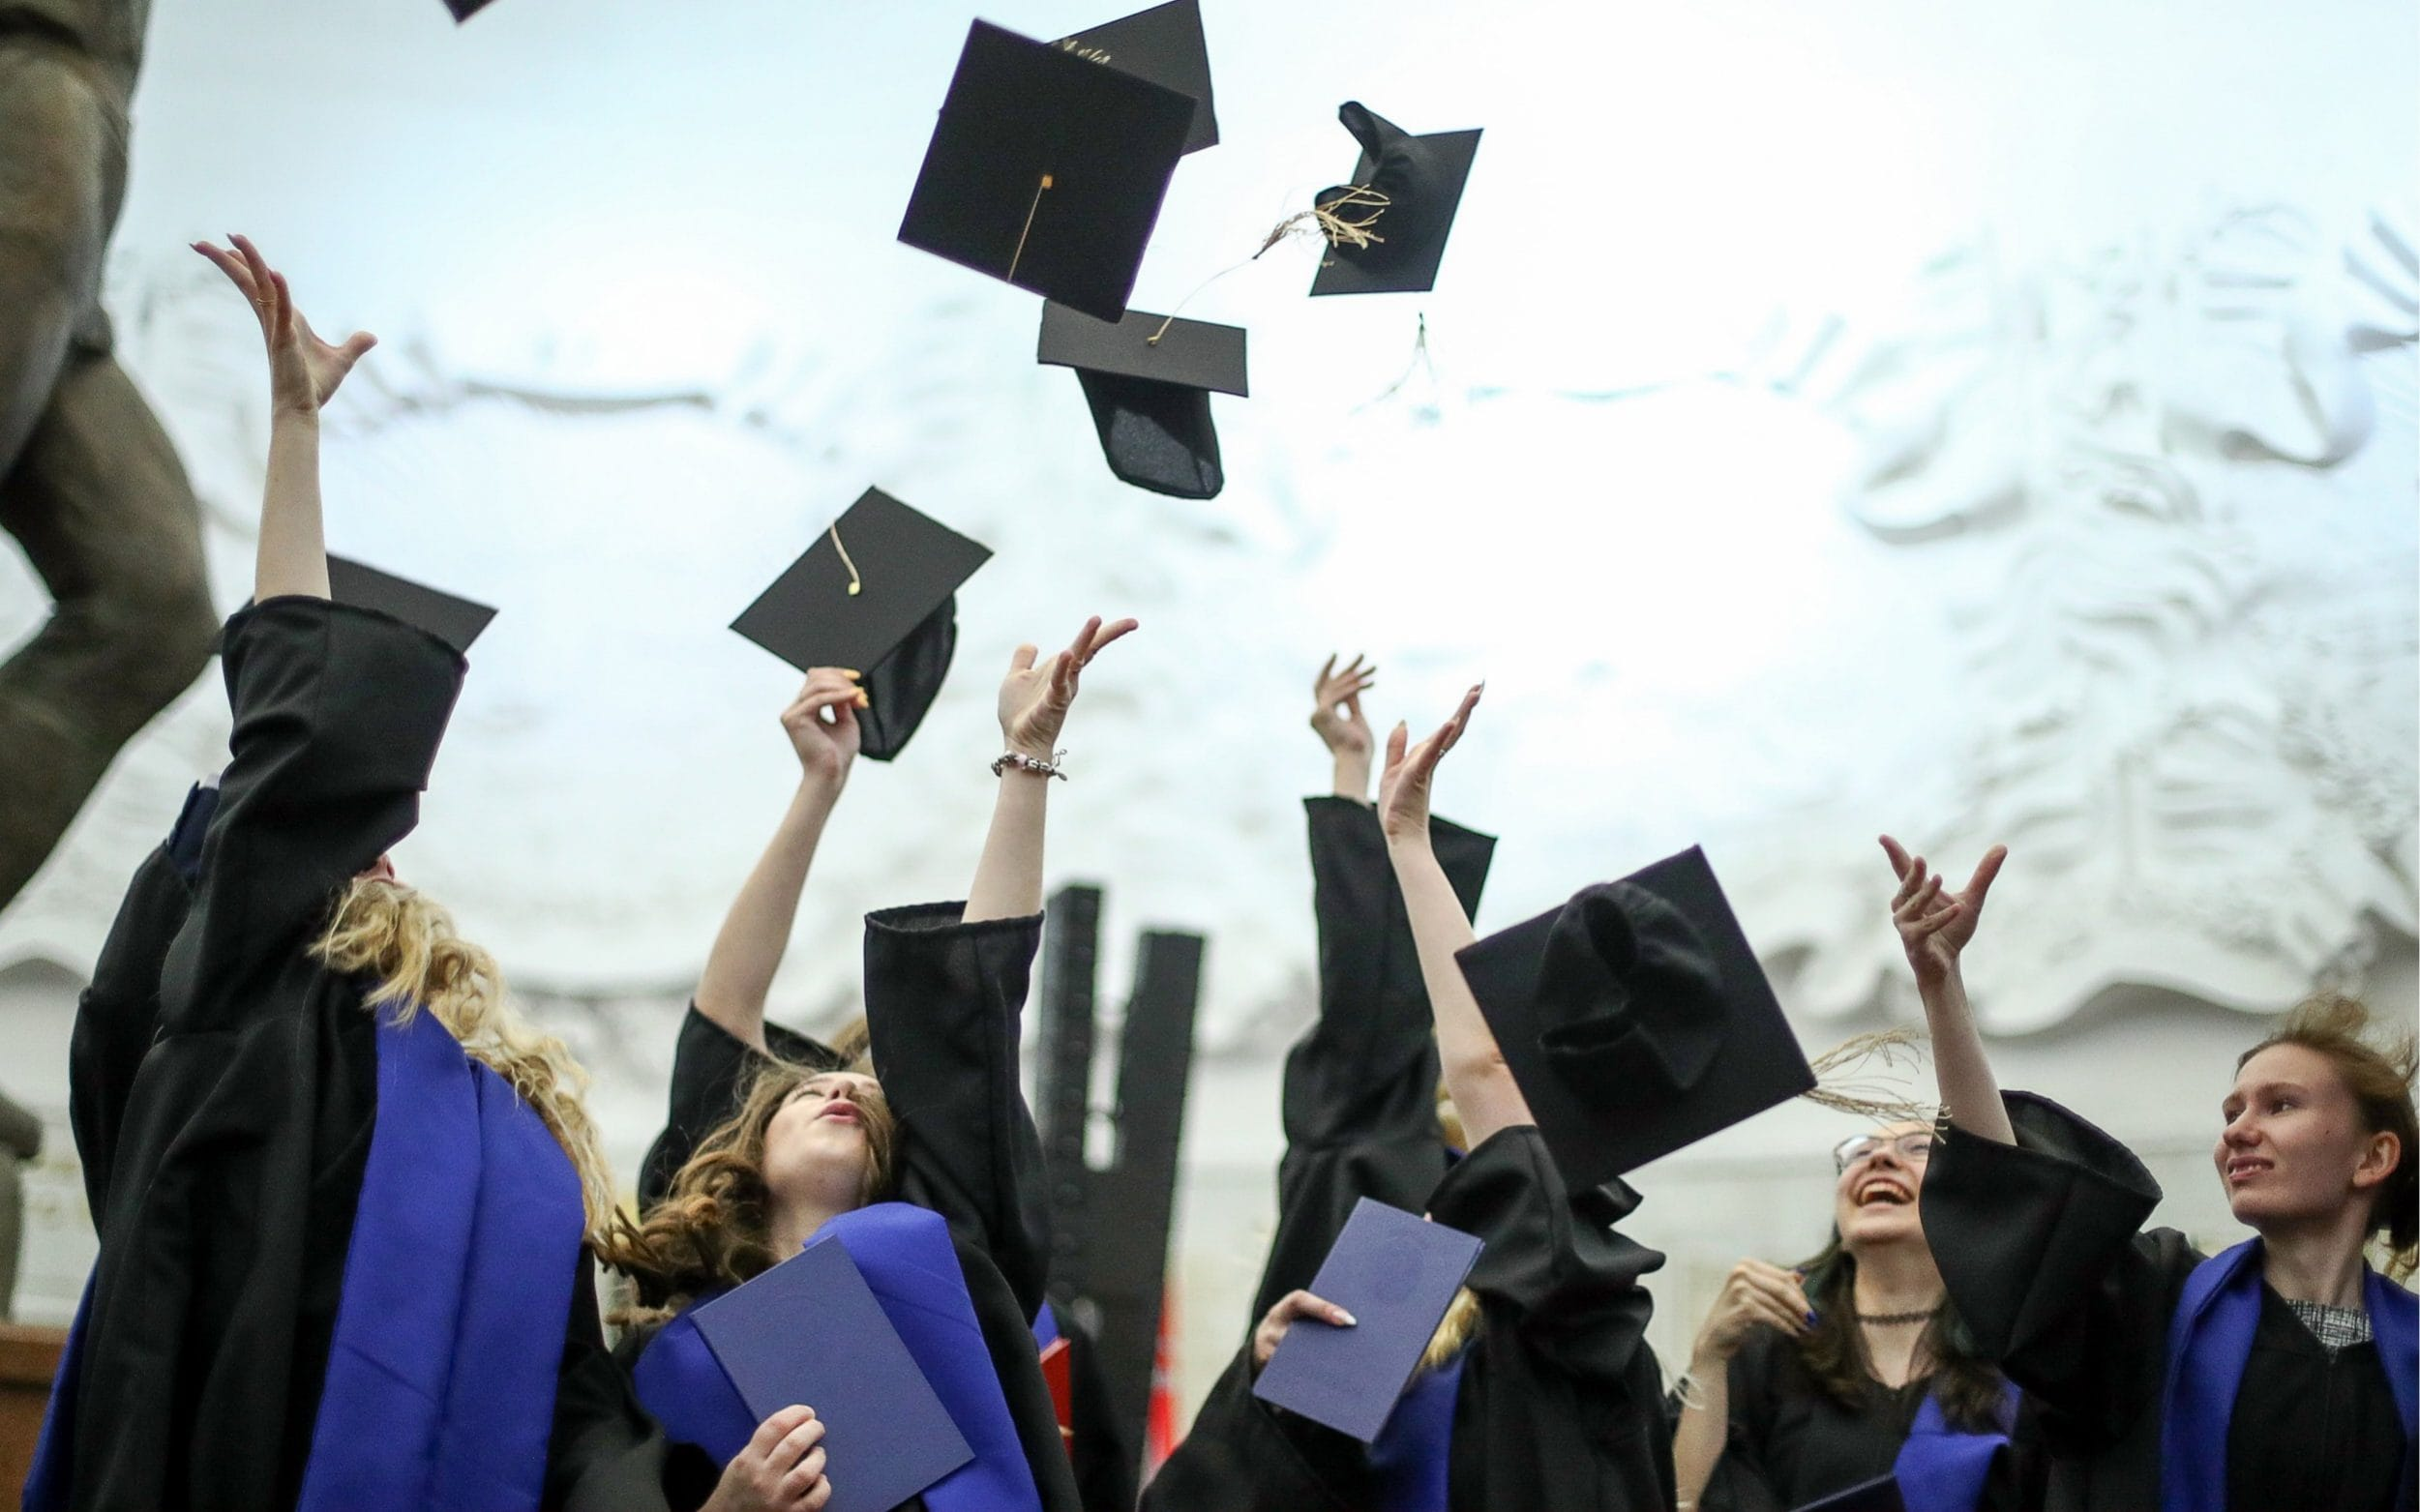 Universities are making lower offers to poor students under the radar to avoid middle class backlash, report says